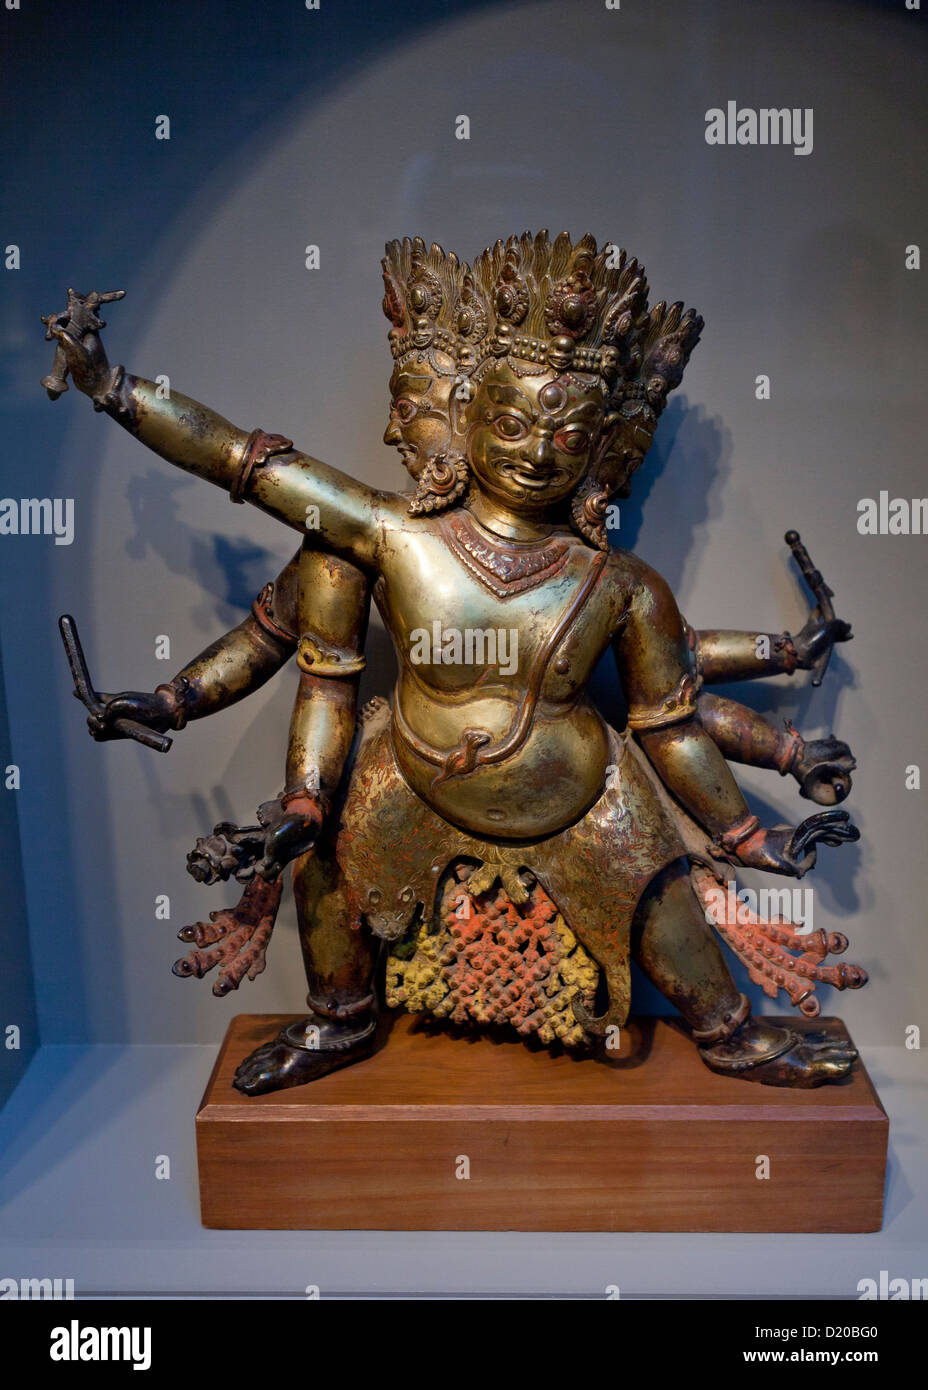 Bhairava sculpture from Nepal, 15th century - Gilt-copper - Stock Image